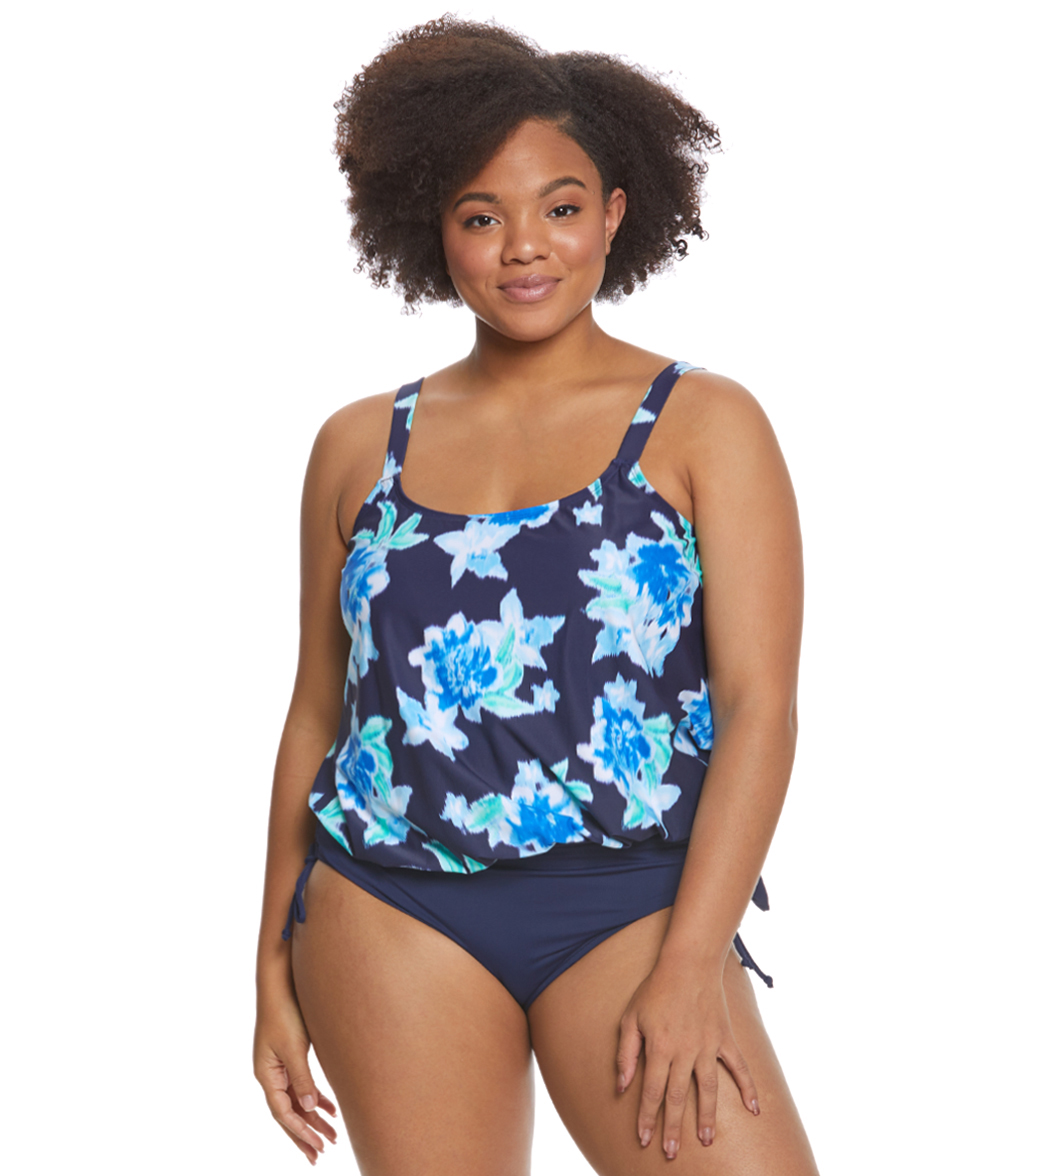 d6805a5981185 Beach House Plus Size Bungalow Bay Flower Sarah Tankini Top at  SwimOutlet.com - Free Shipping